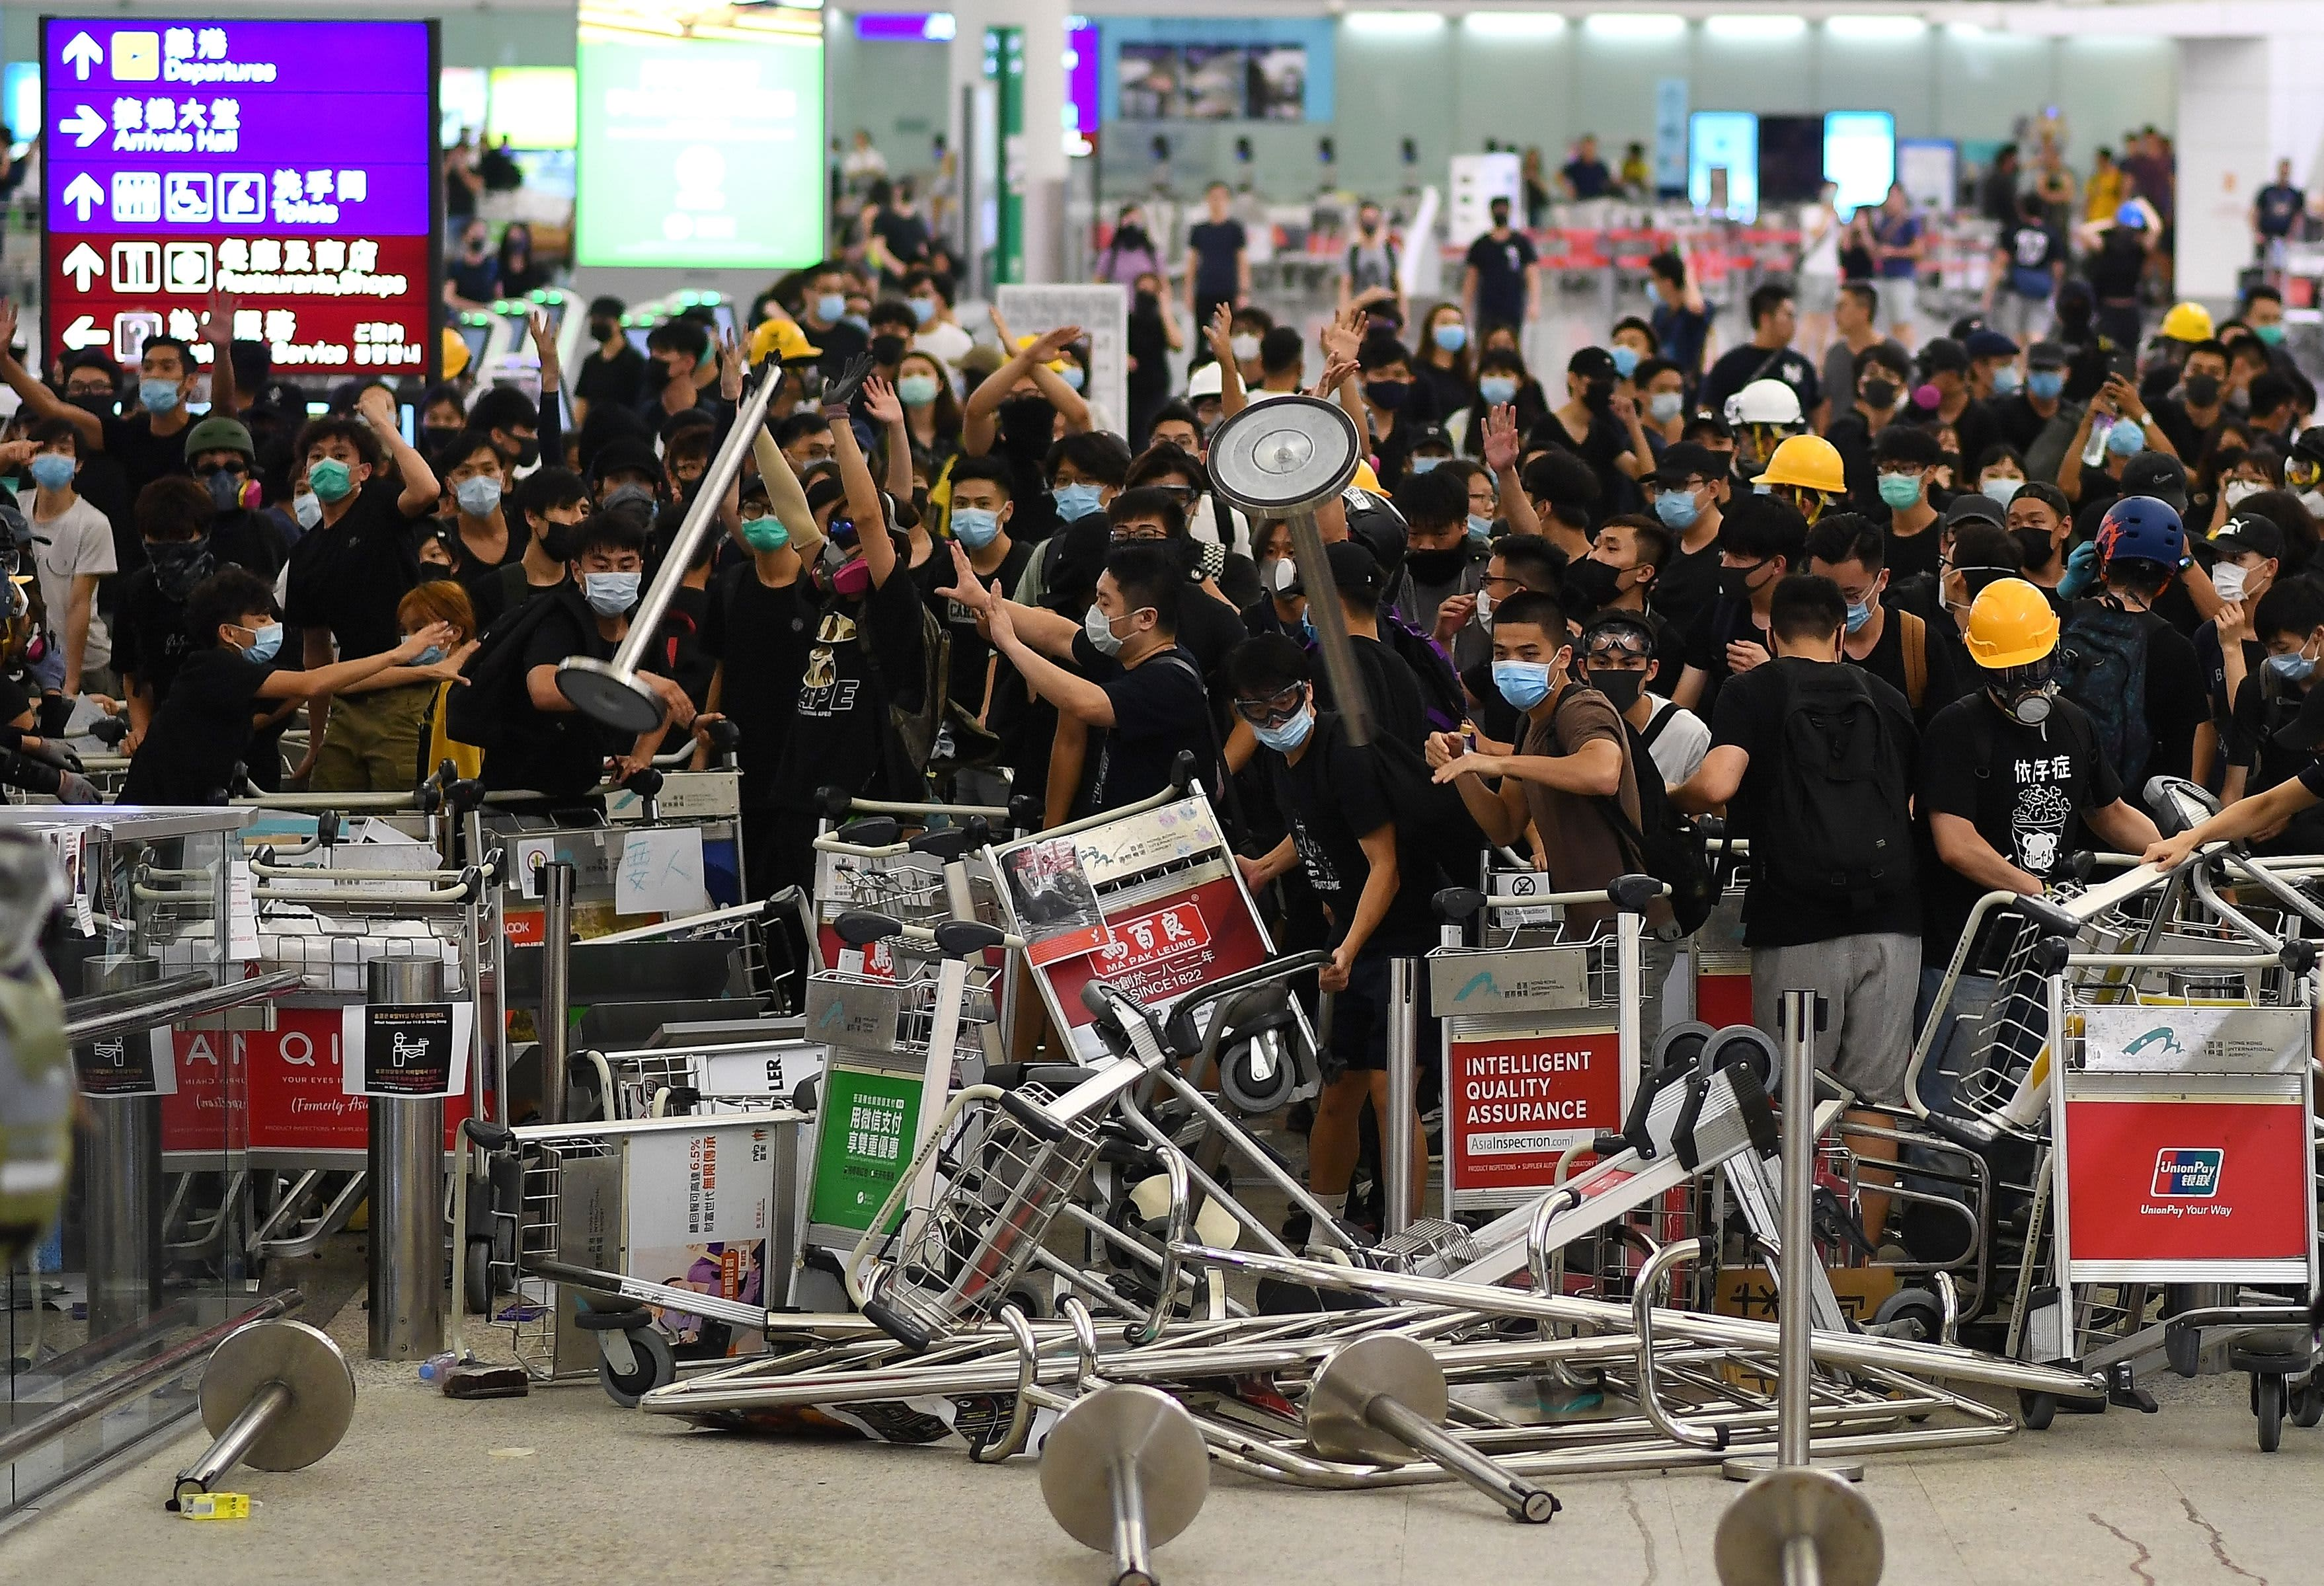 'There is no return to what Hong Kong was,' strategist says of protests